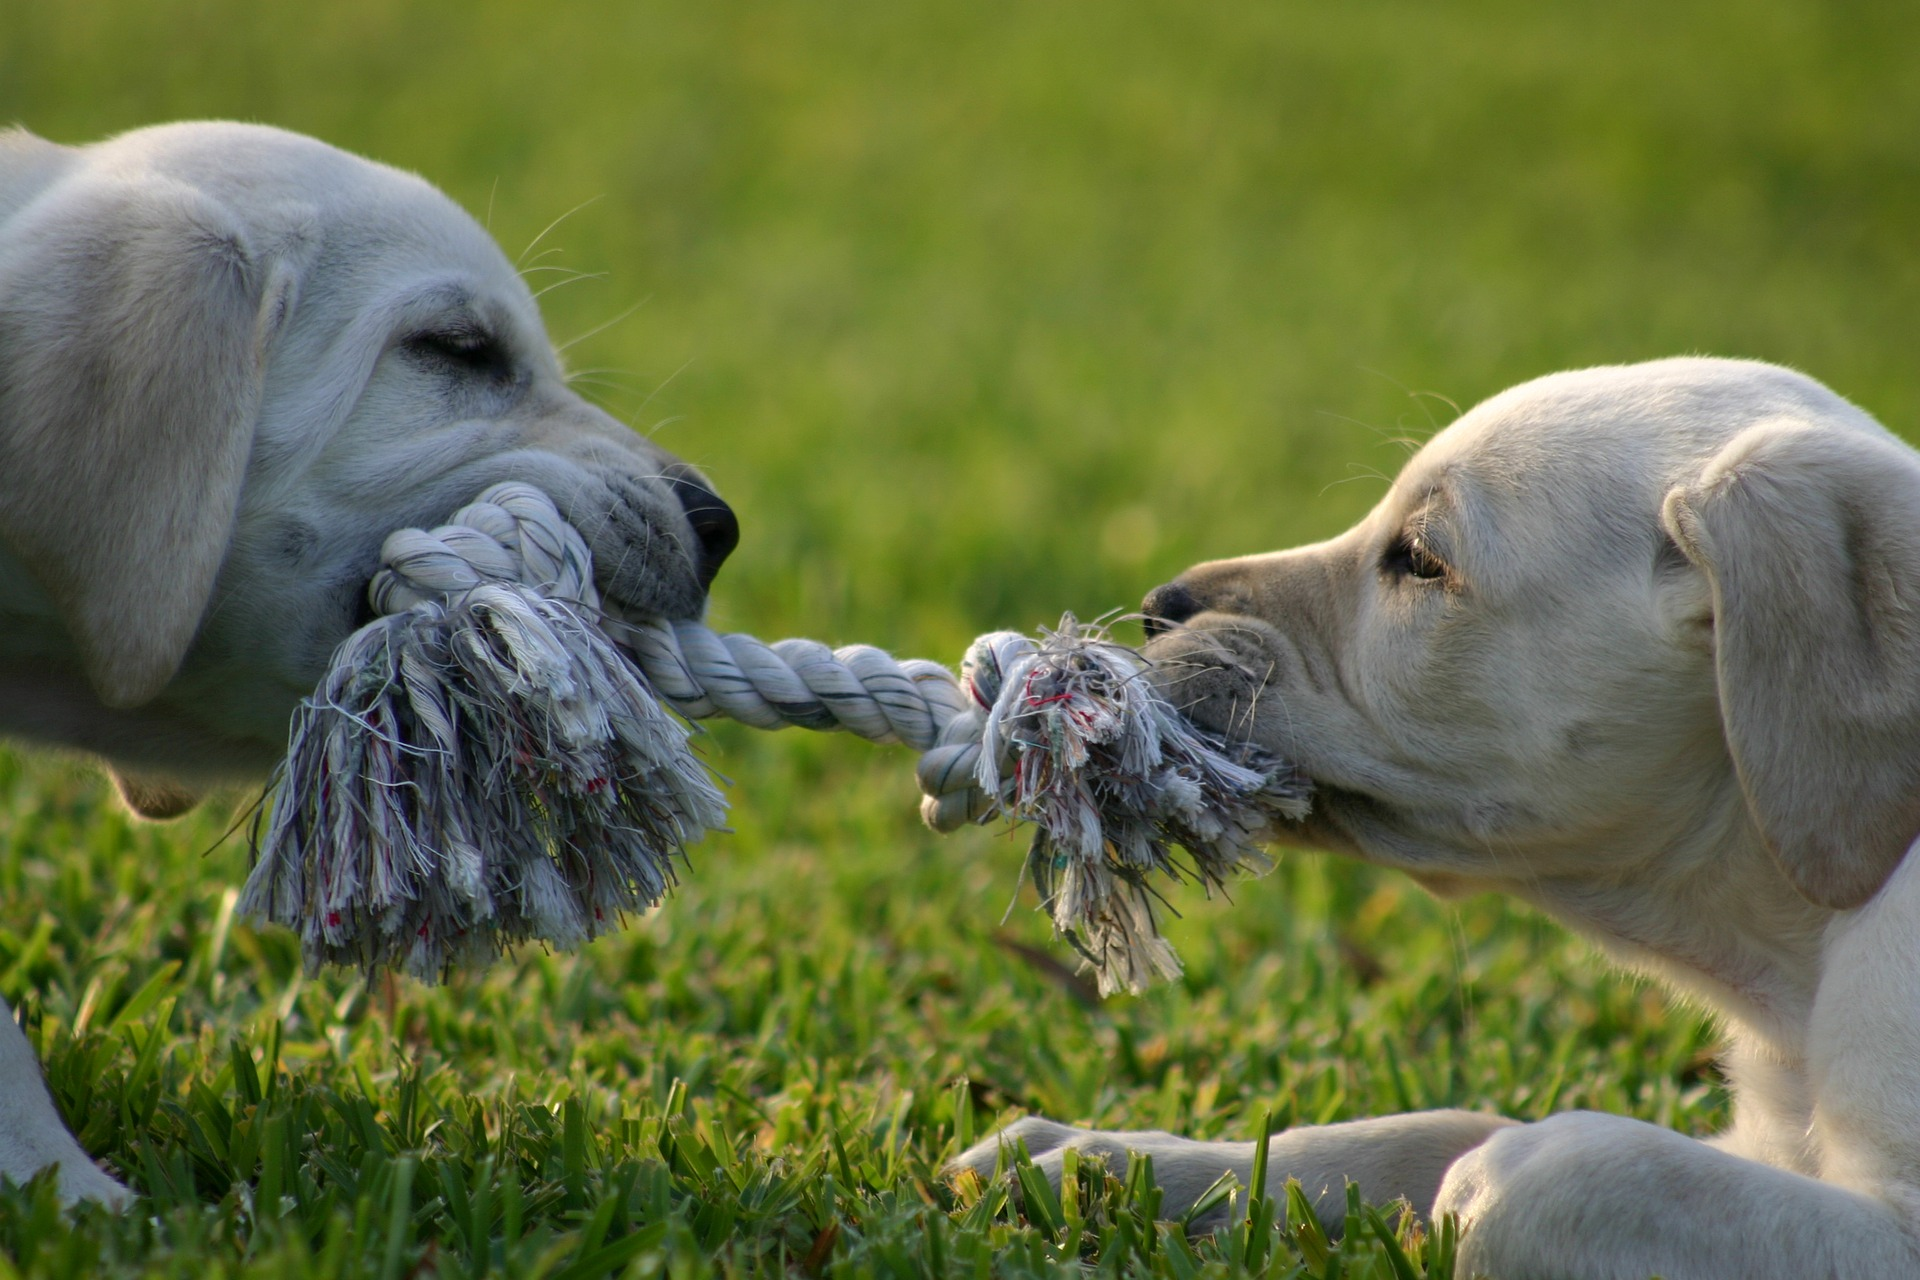 two dogs tugging on a rope